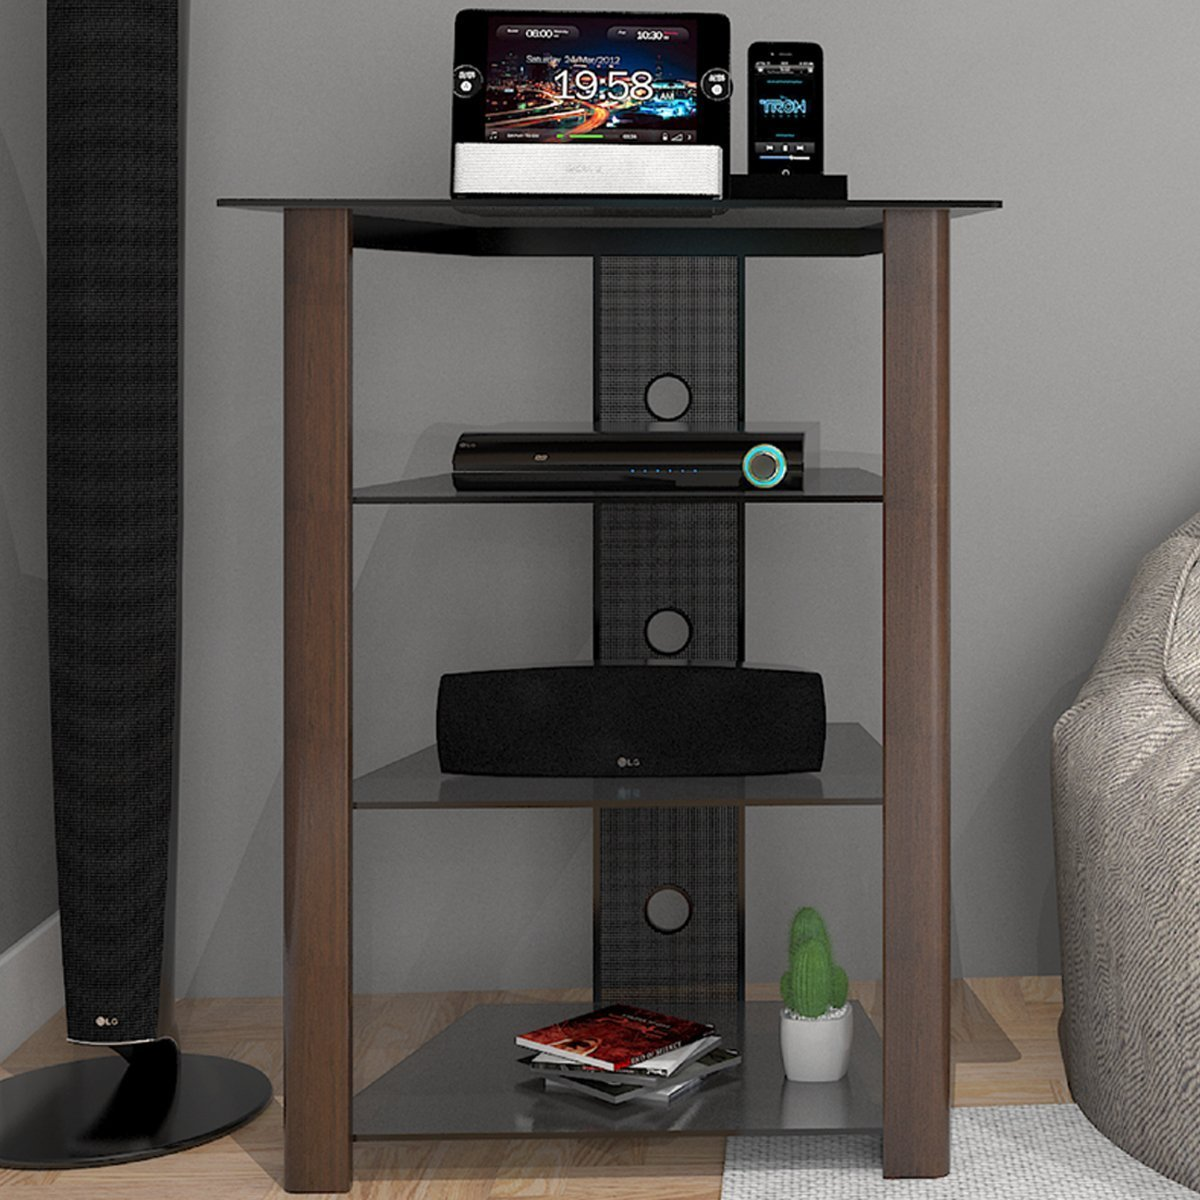 Ryan Rove Ashton Multi-Level Component Stand in Wood Espresso with Cable Management System by Ryan Rove